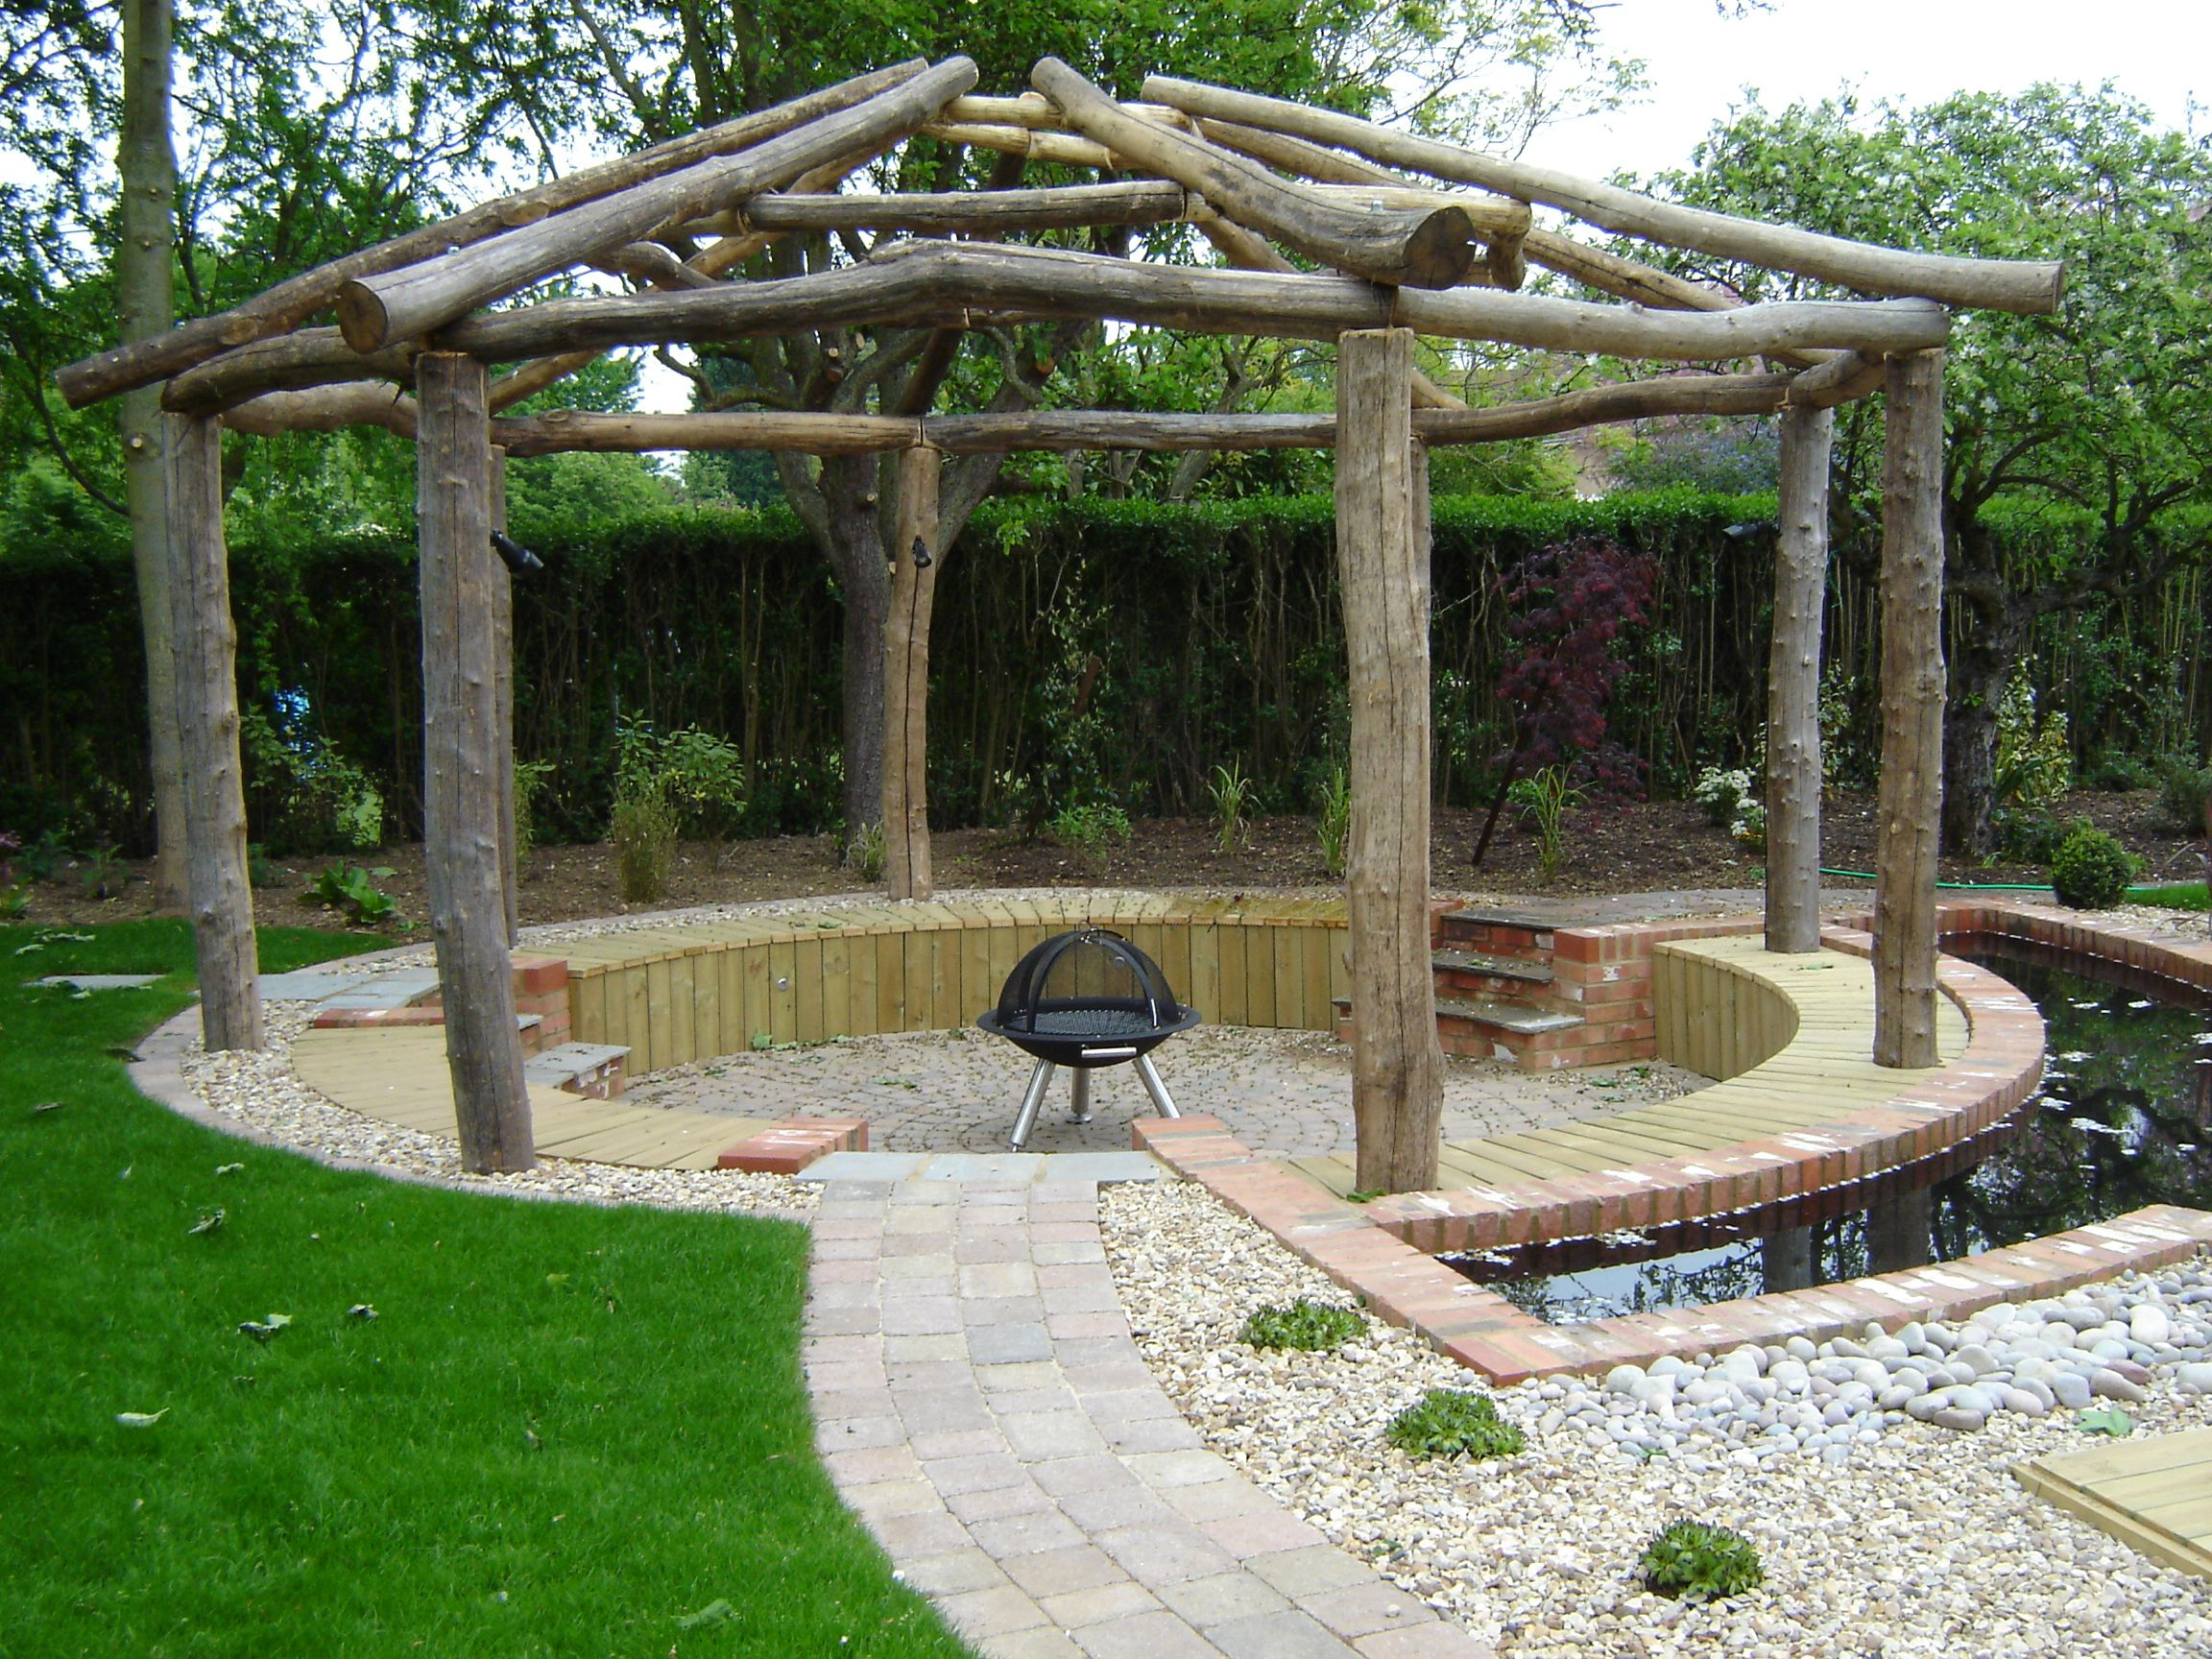 A sunken seating area with firepit and water channel